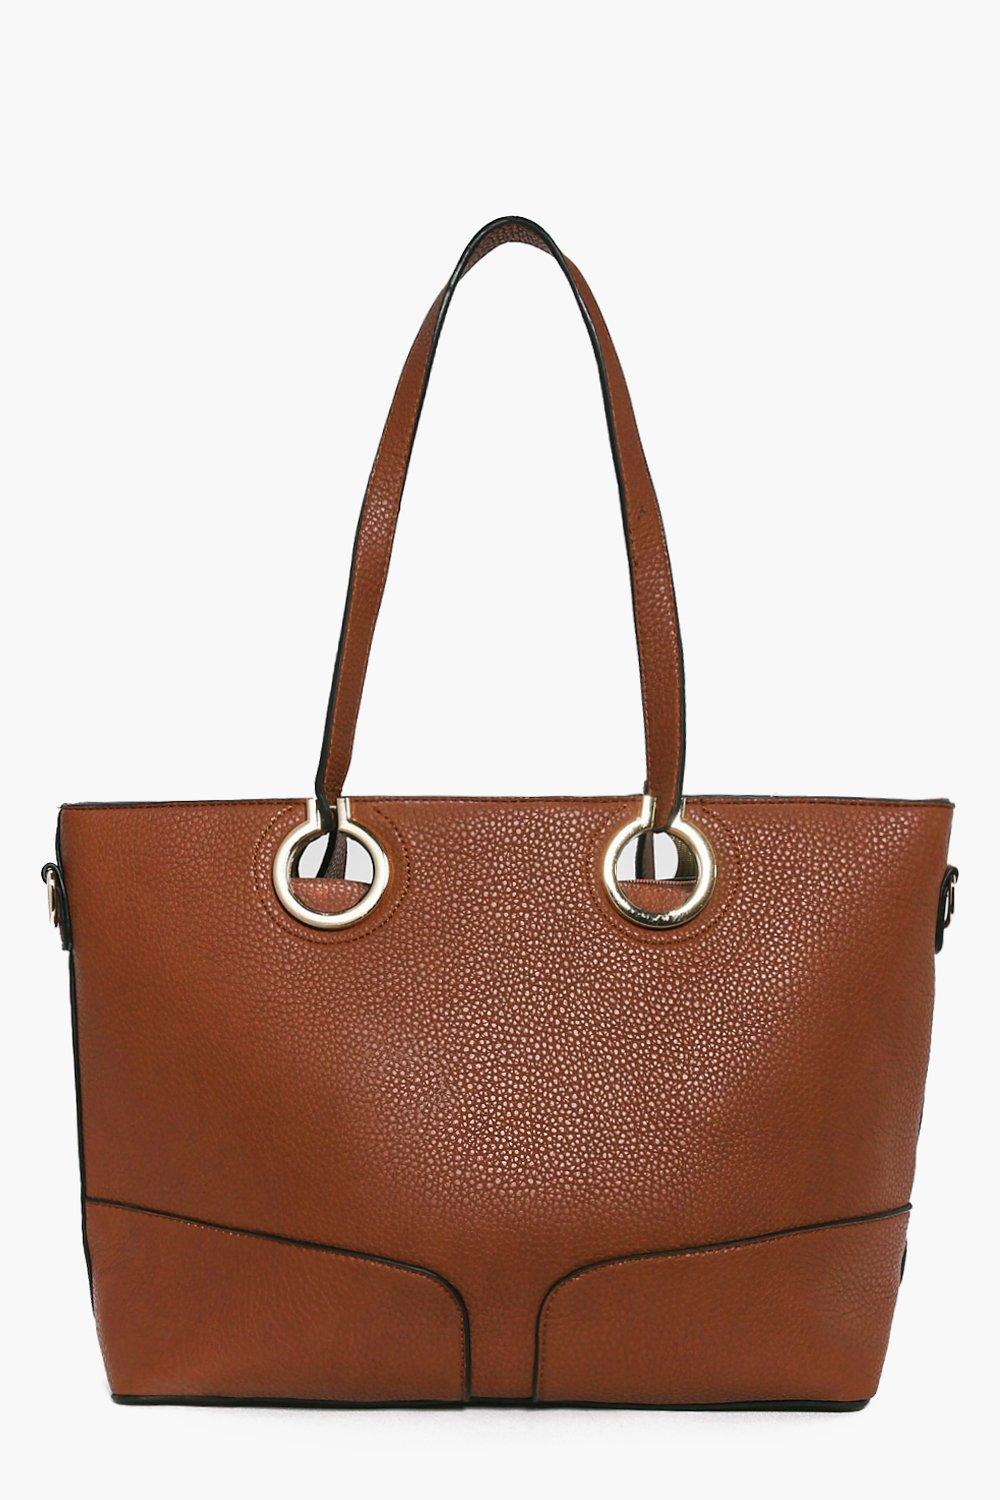 Metal Ring Detail Large Day Bag tan